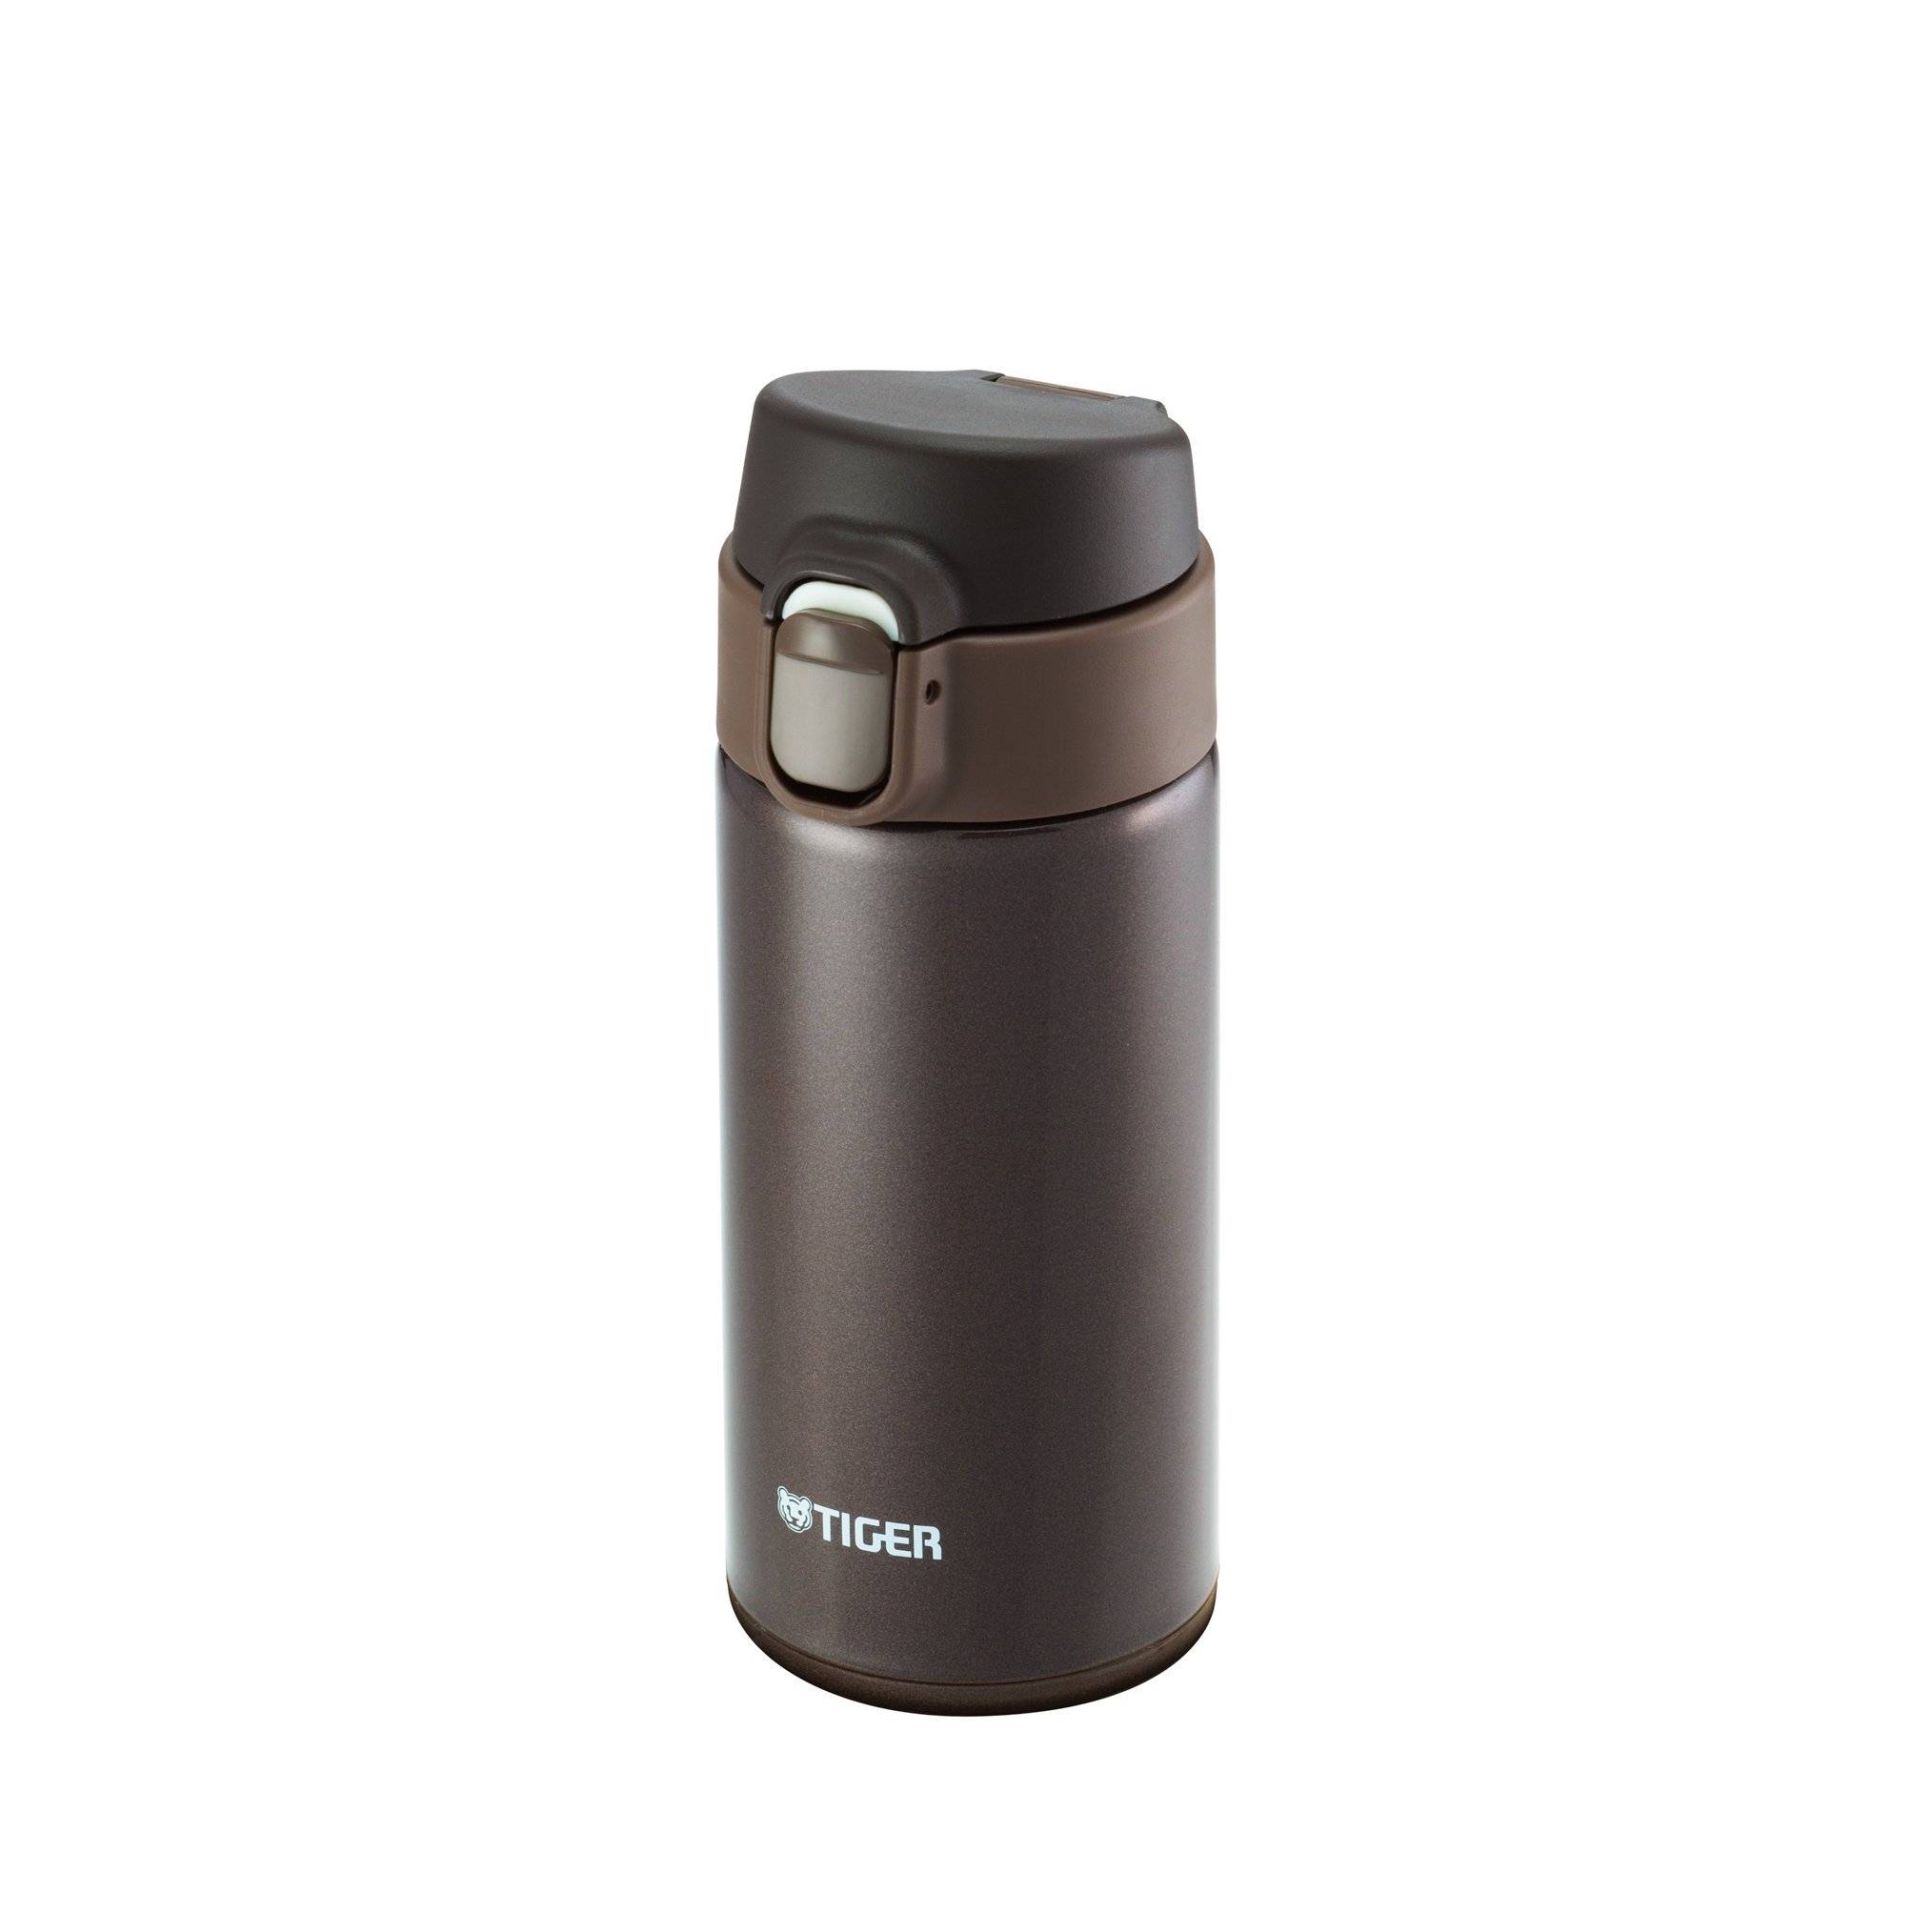 Tiger MMY-A036 TV Vacuum Insulated Stainless Steel Travel Mug, Double Wall, Flip Open Lid with Lock Button, 12 Oz/0.36 L, Brown